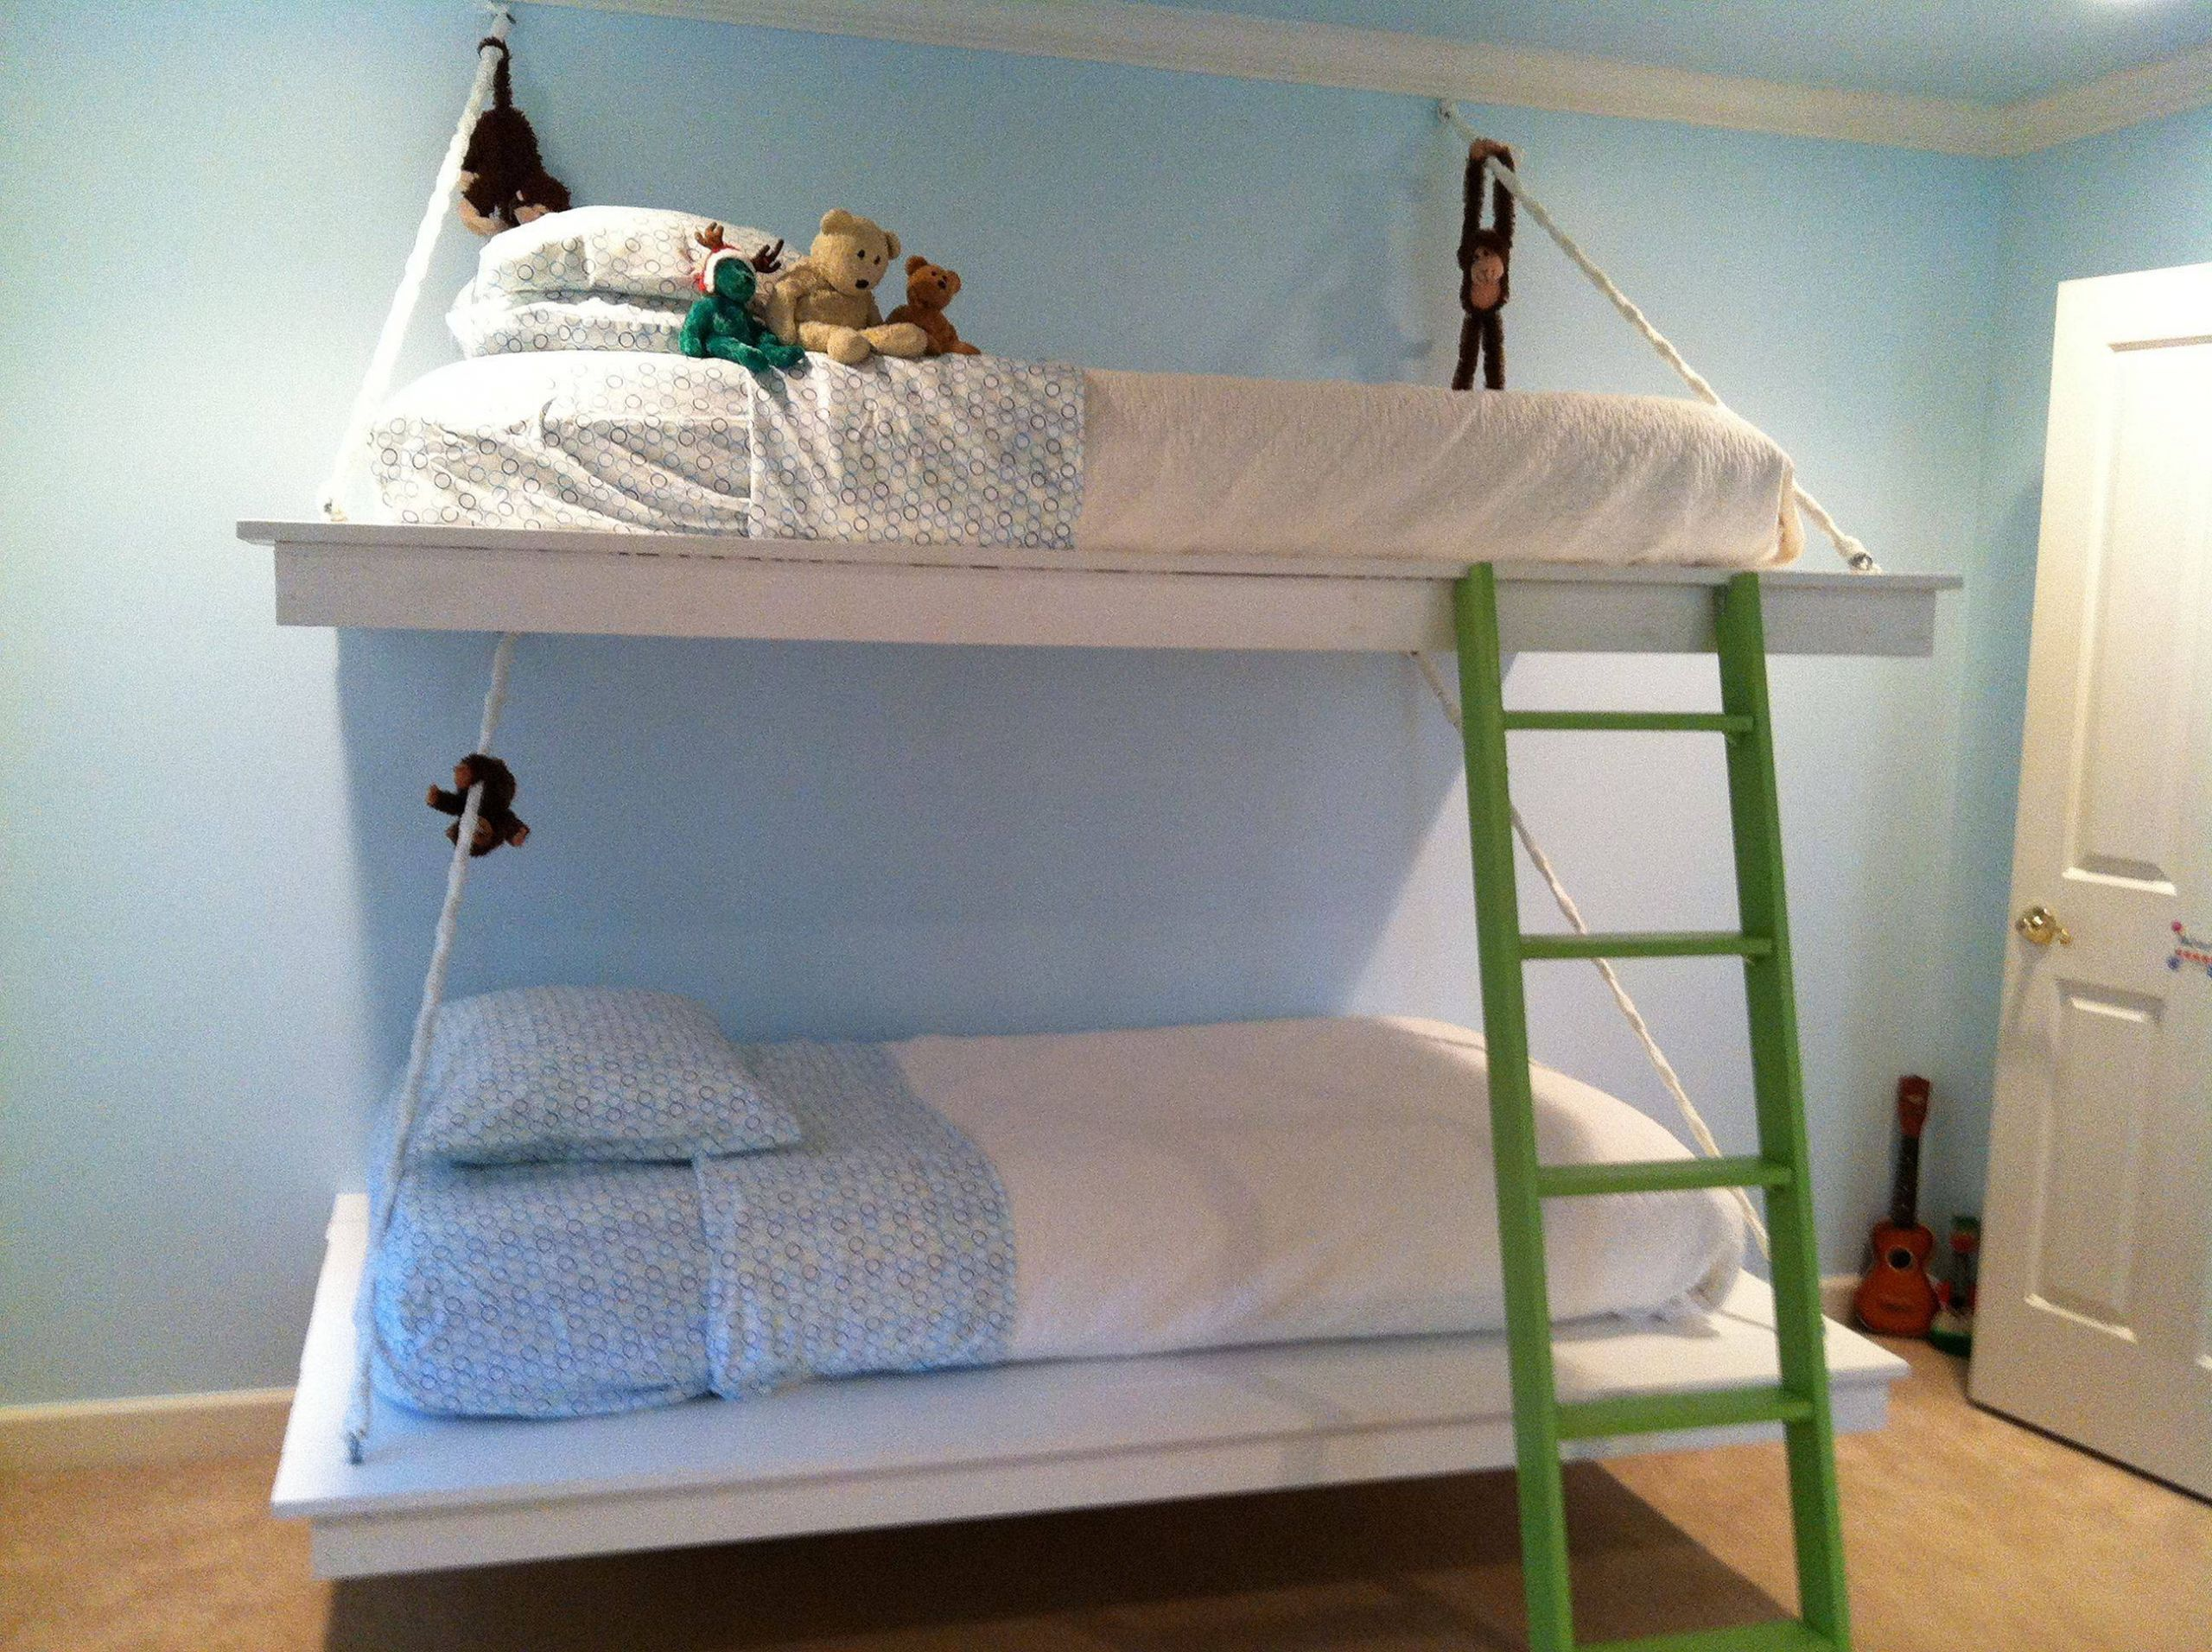 Exceptional Unusual Bed Frames Unique Inspiring 10 Marvelous Bunk Bed Design for Unique Beds In